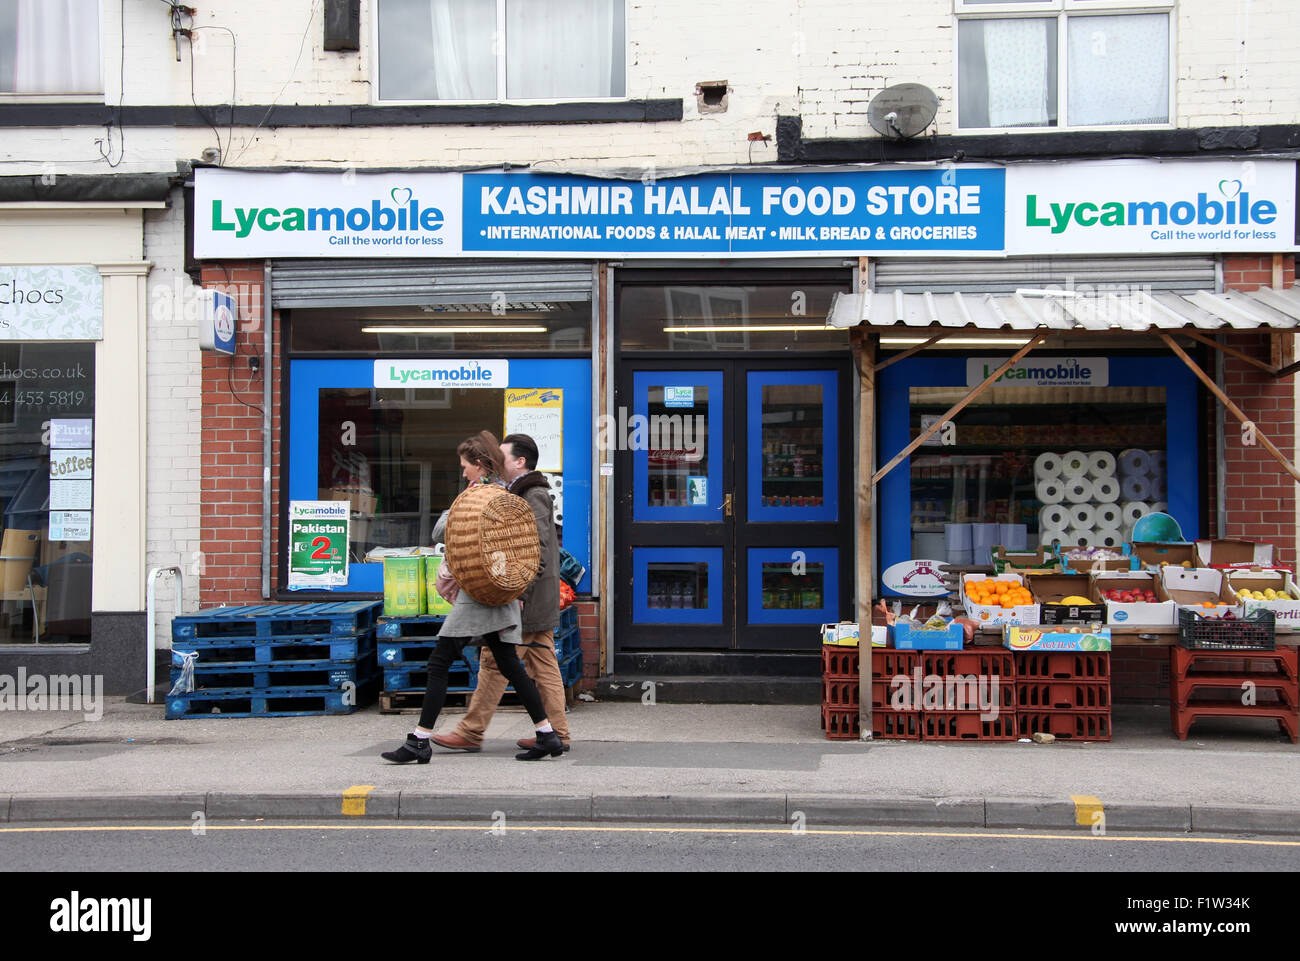 Lycamobile Stock Photos & Lycamobile Stock Images - Alamy